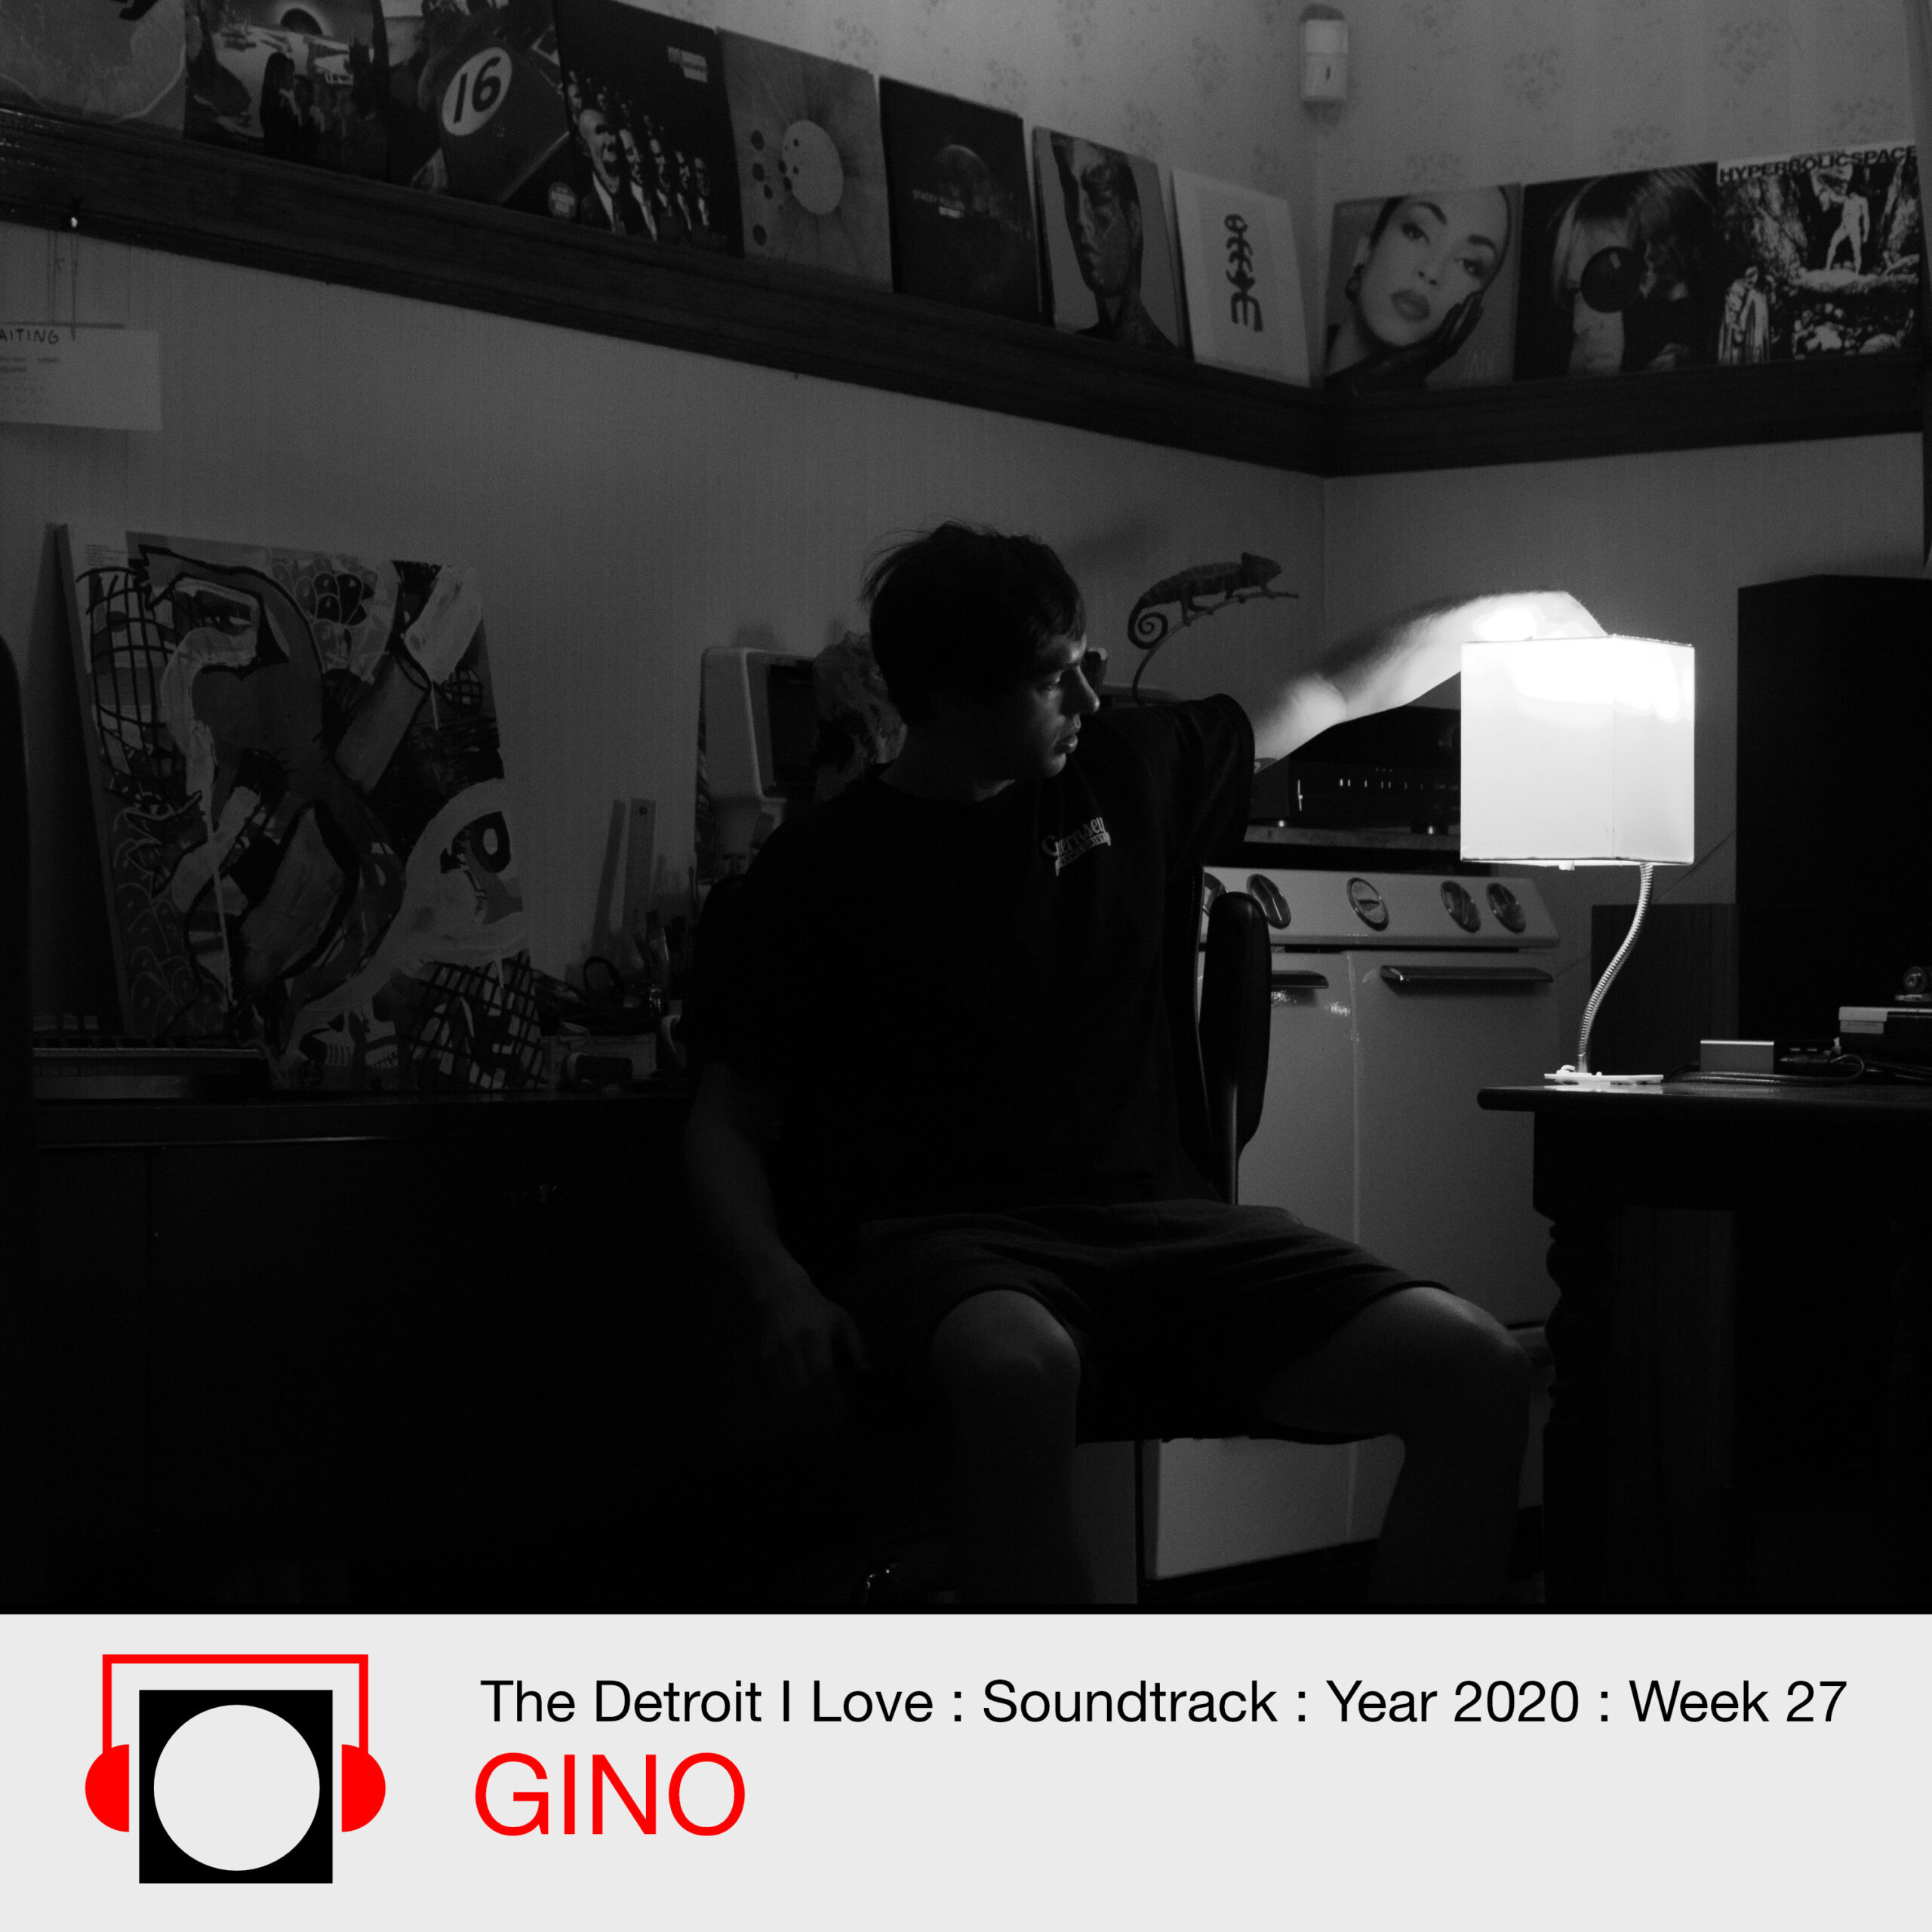 Soundtrack : Gino